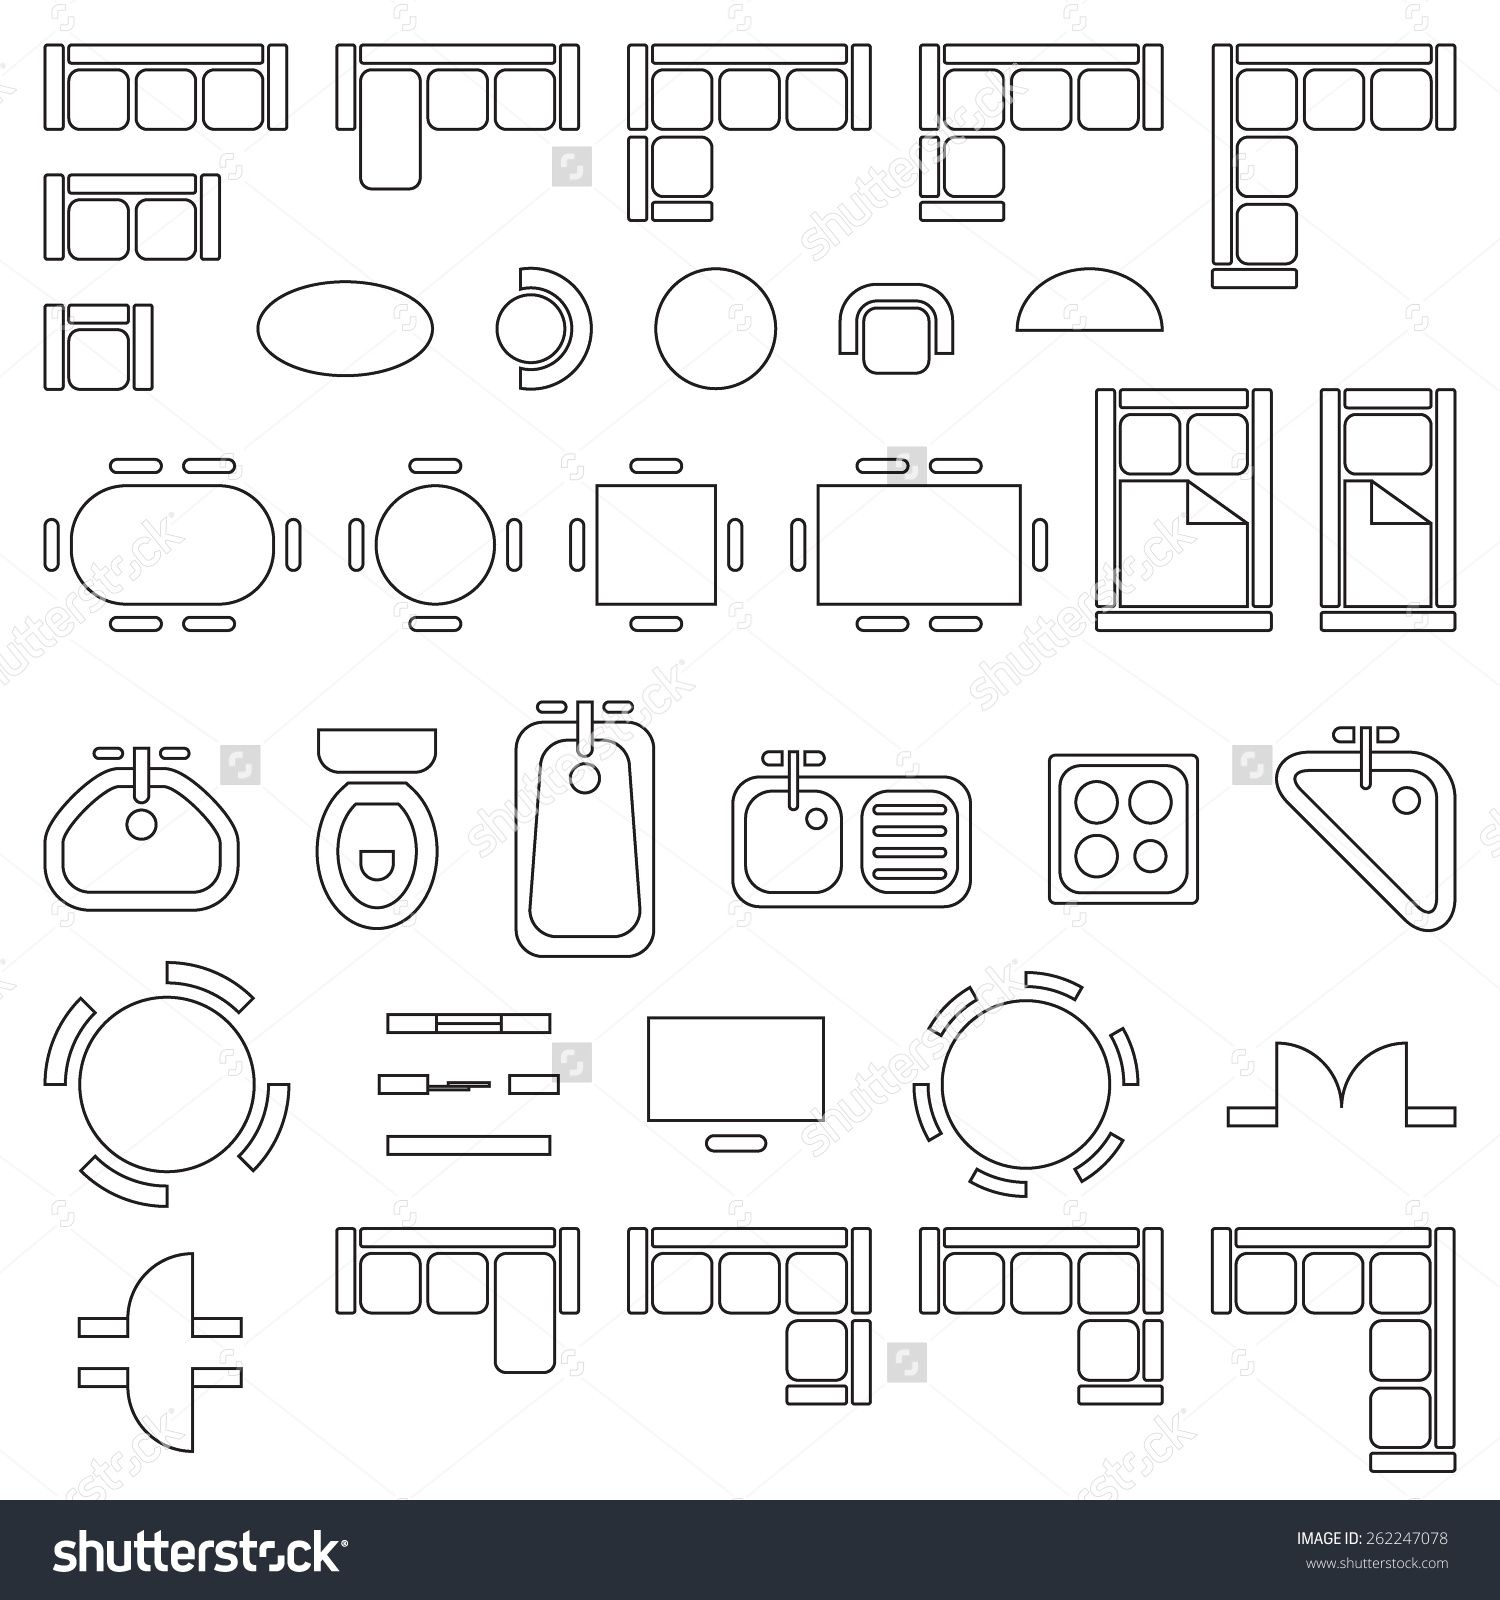 Standard furniture symbols used in architecture plans for Architecture design blueprint